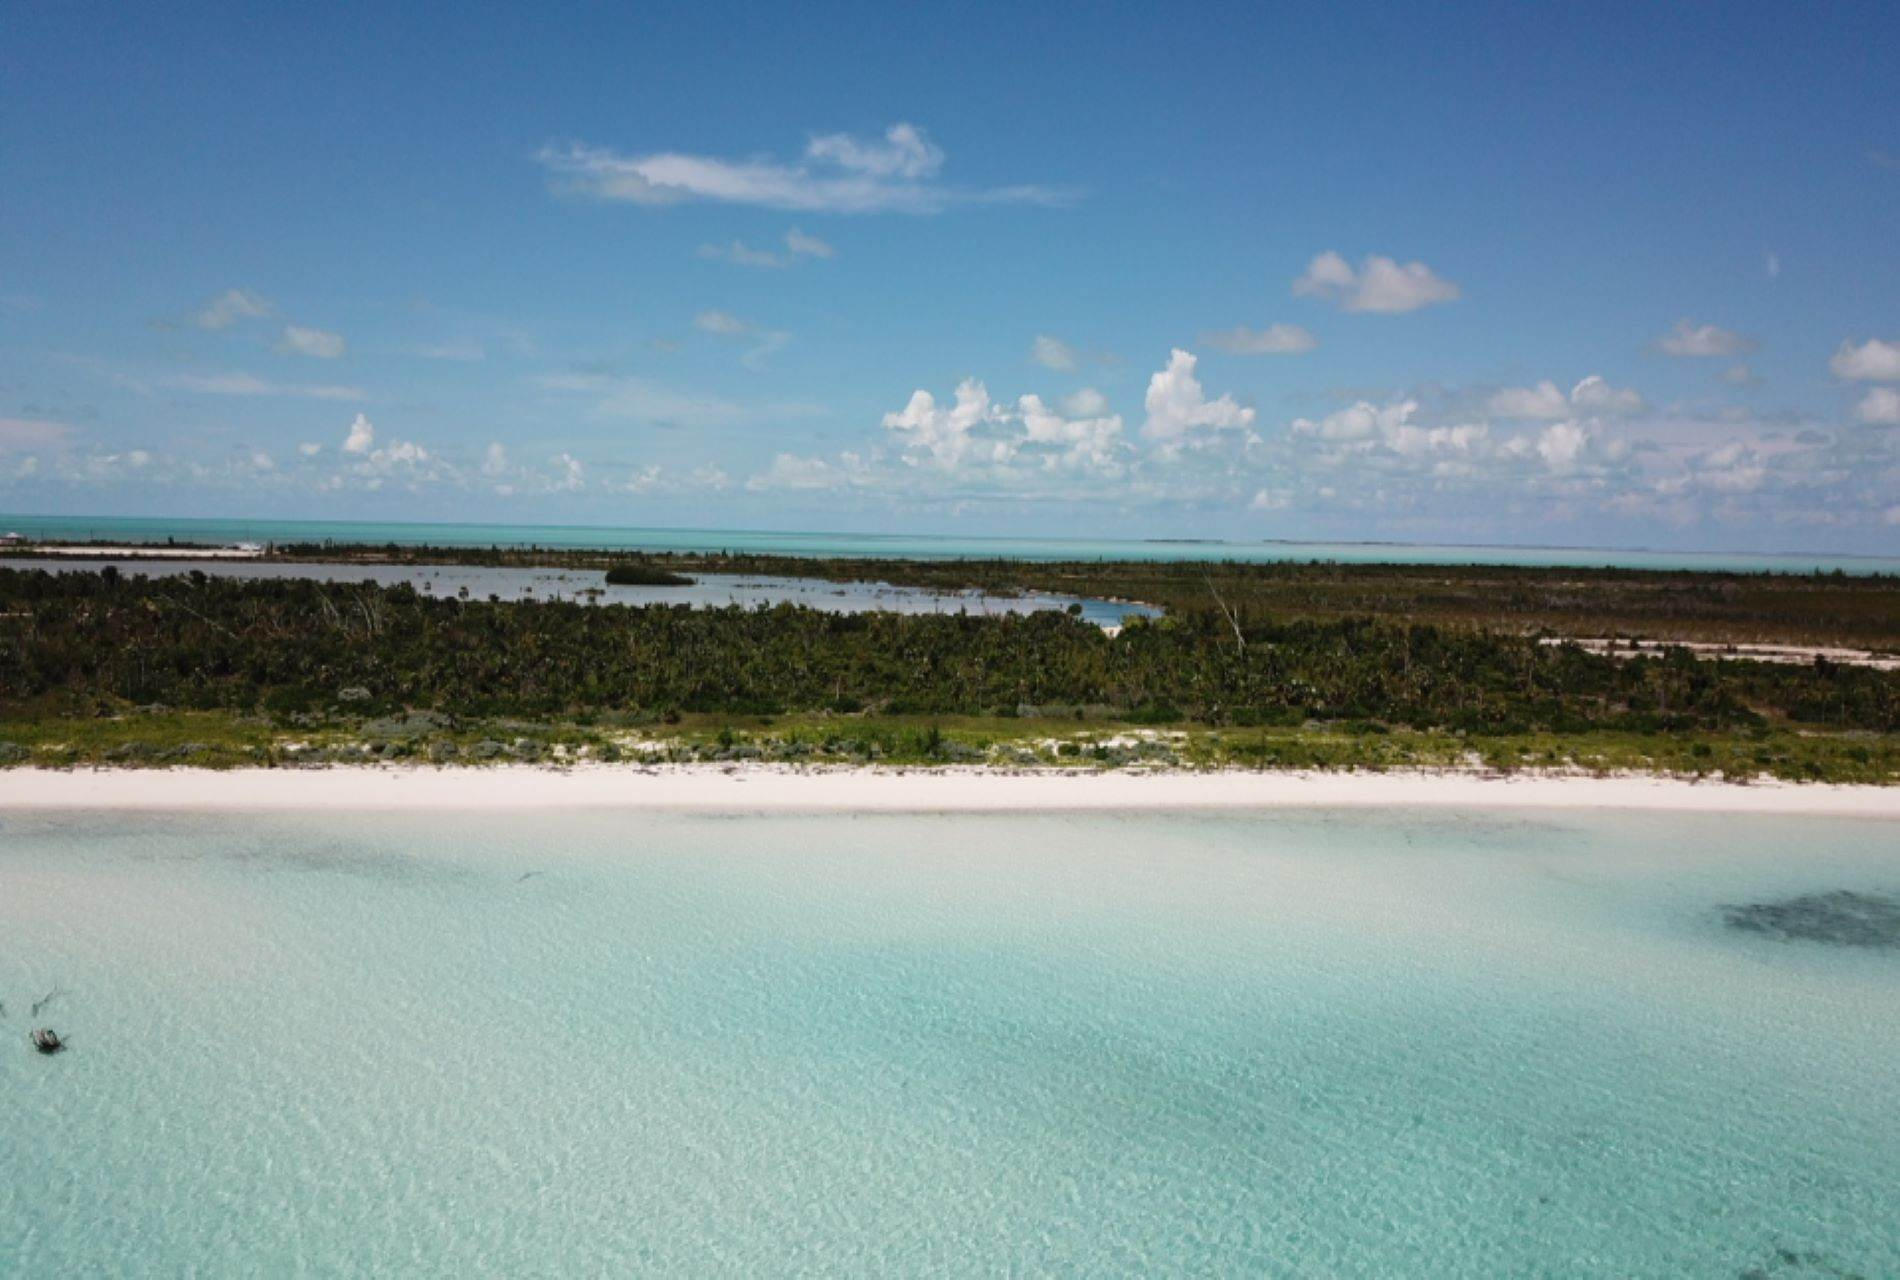 10. Land for Sale at Lot 29 Chub Cay - MLS 38796 Chub Cay, Berry Islands, Bahamas